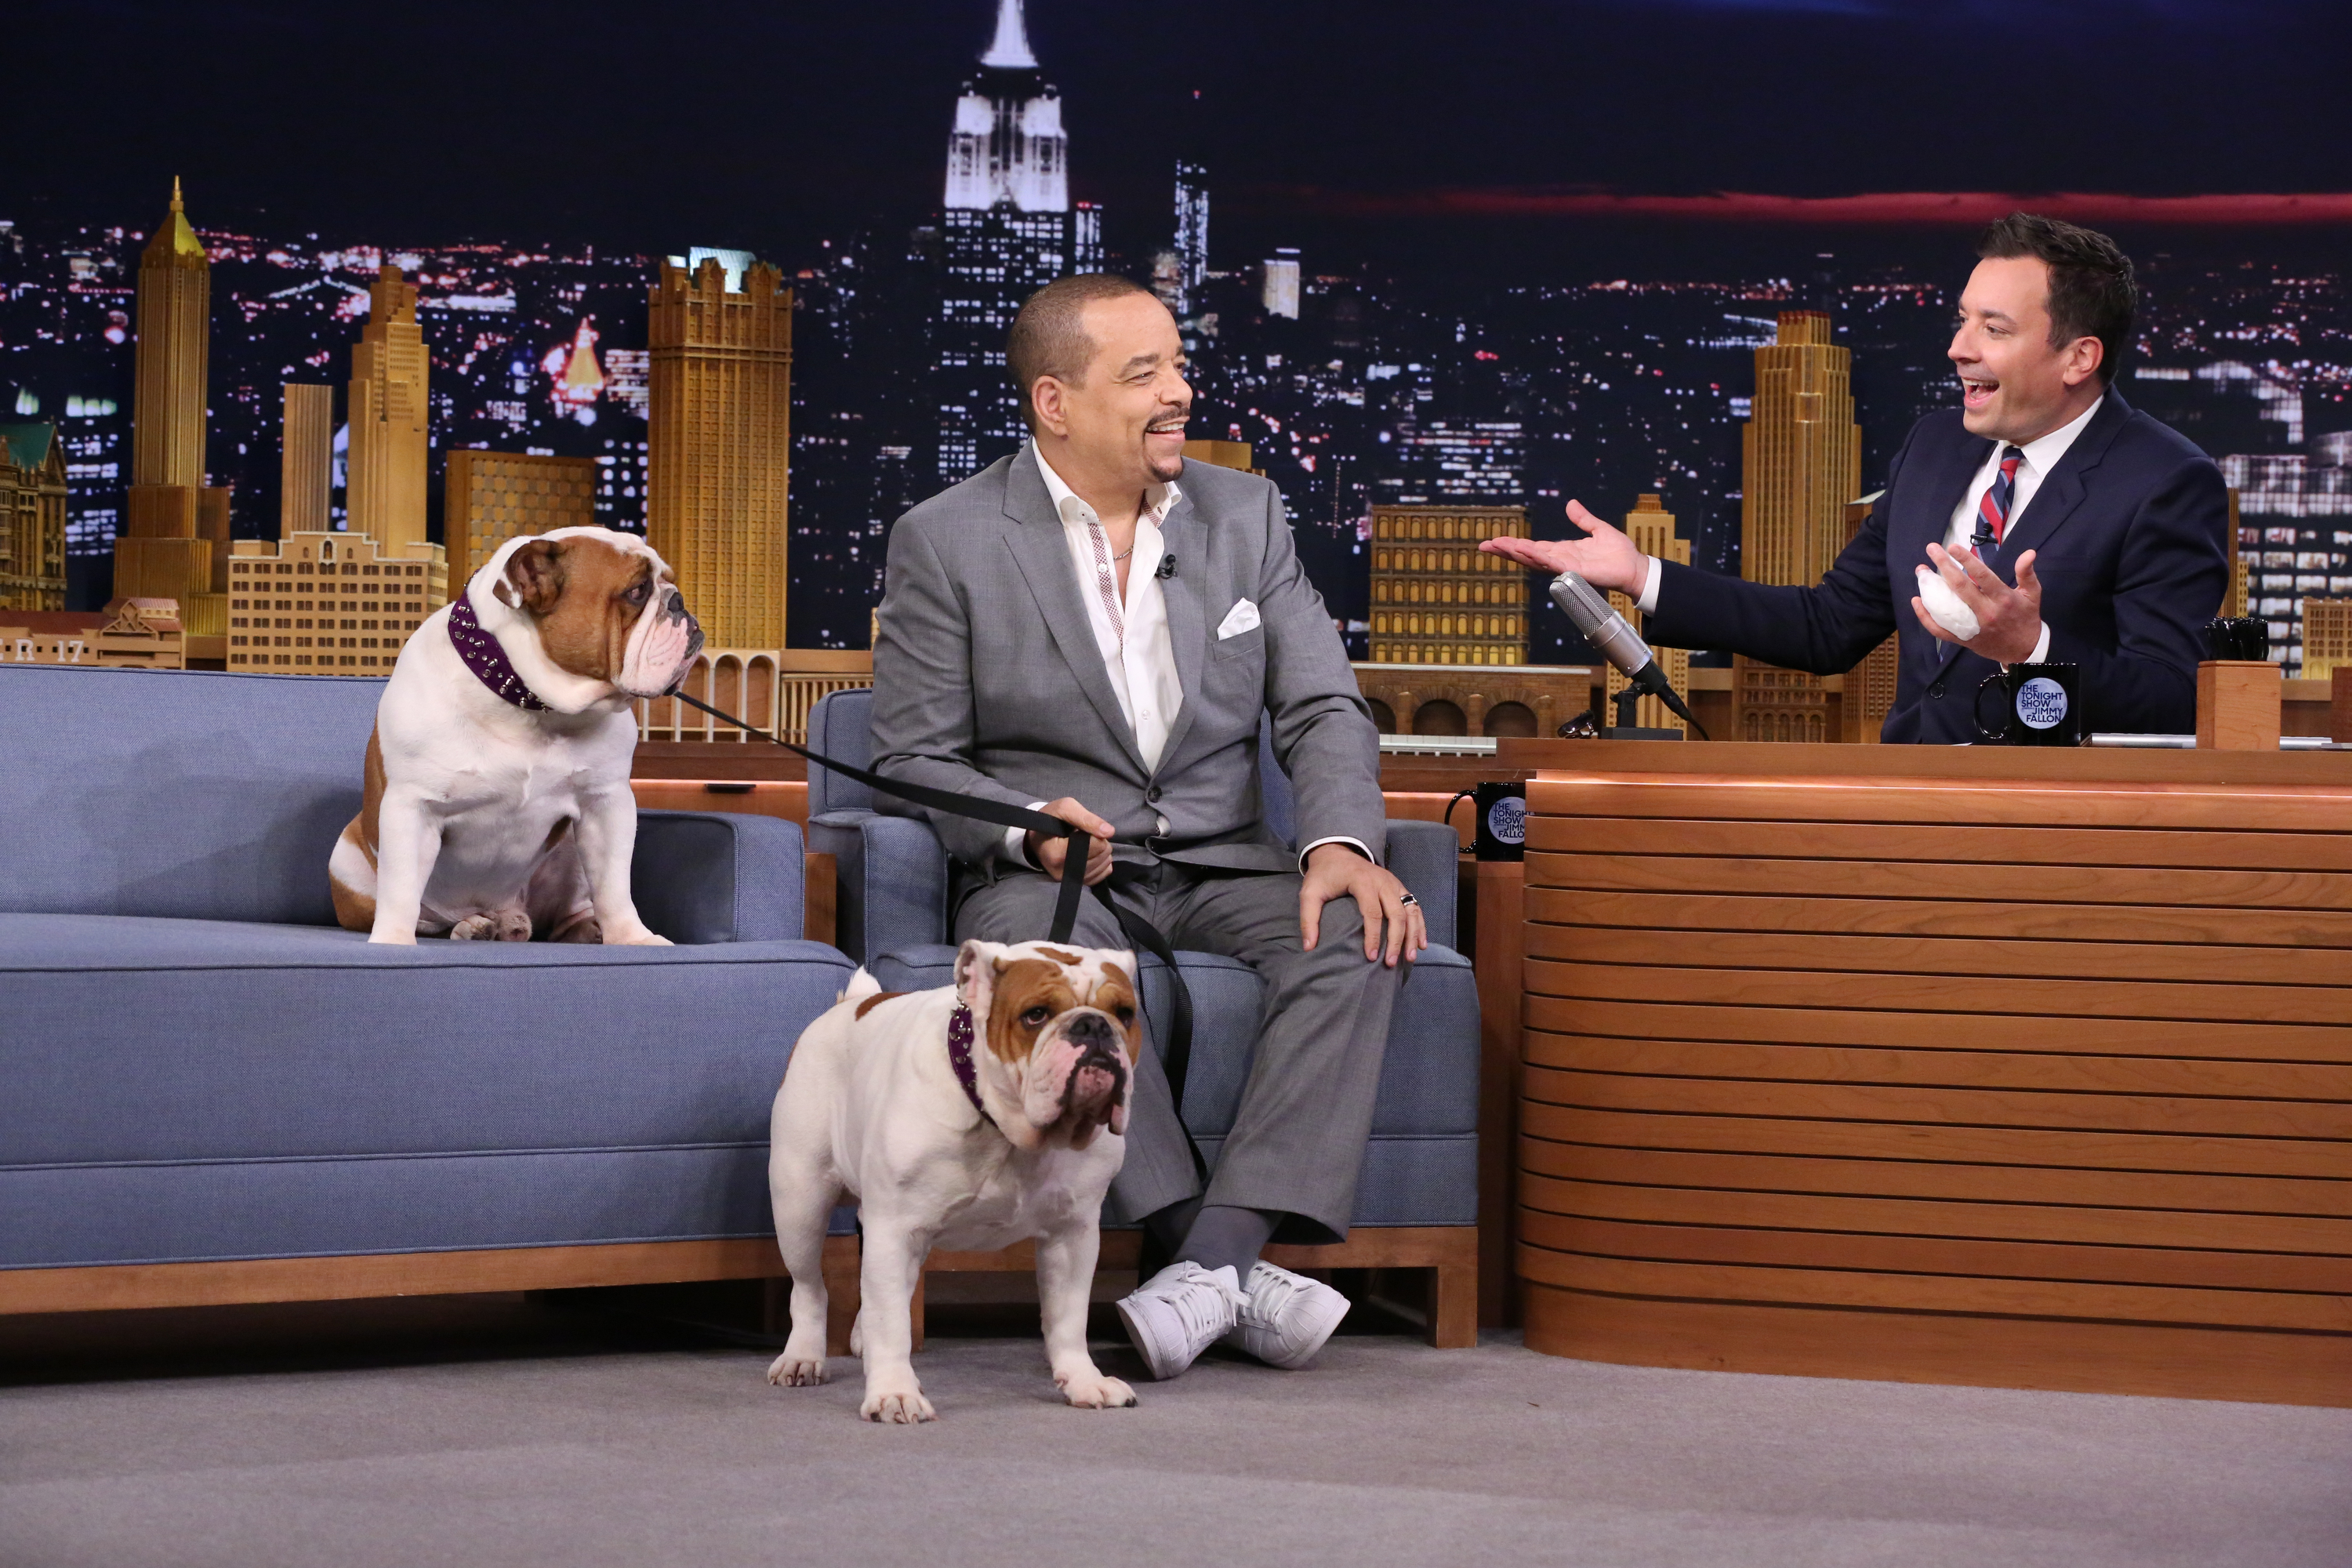 Actor Ice-T during an interview with host Jimmy Fallon on July 30, 2015